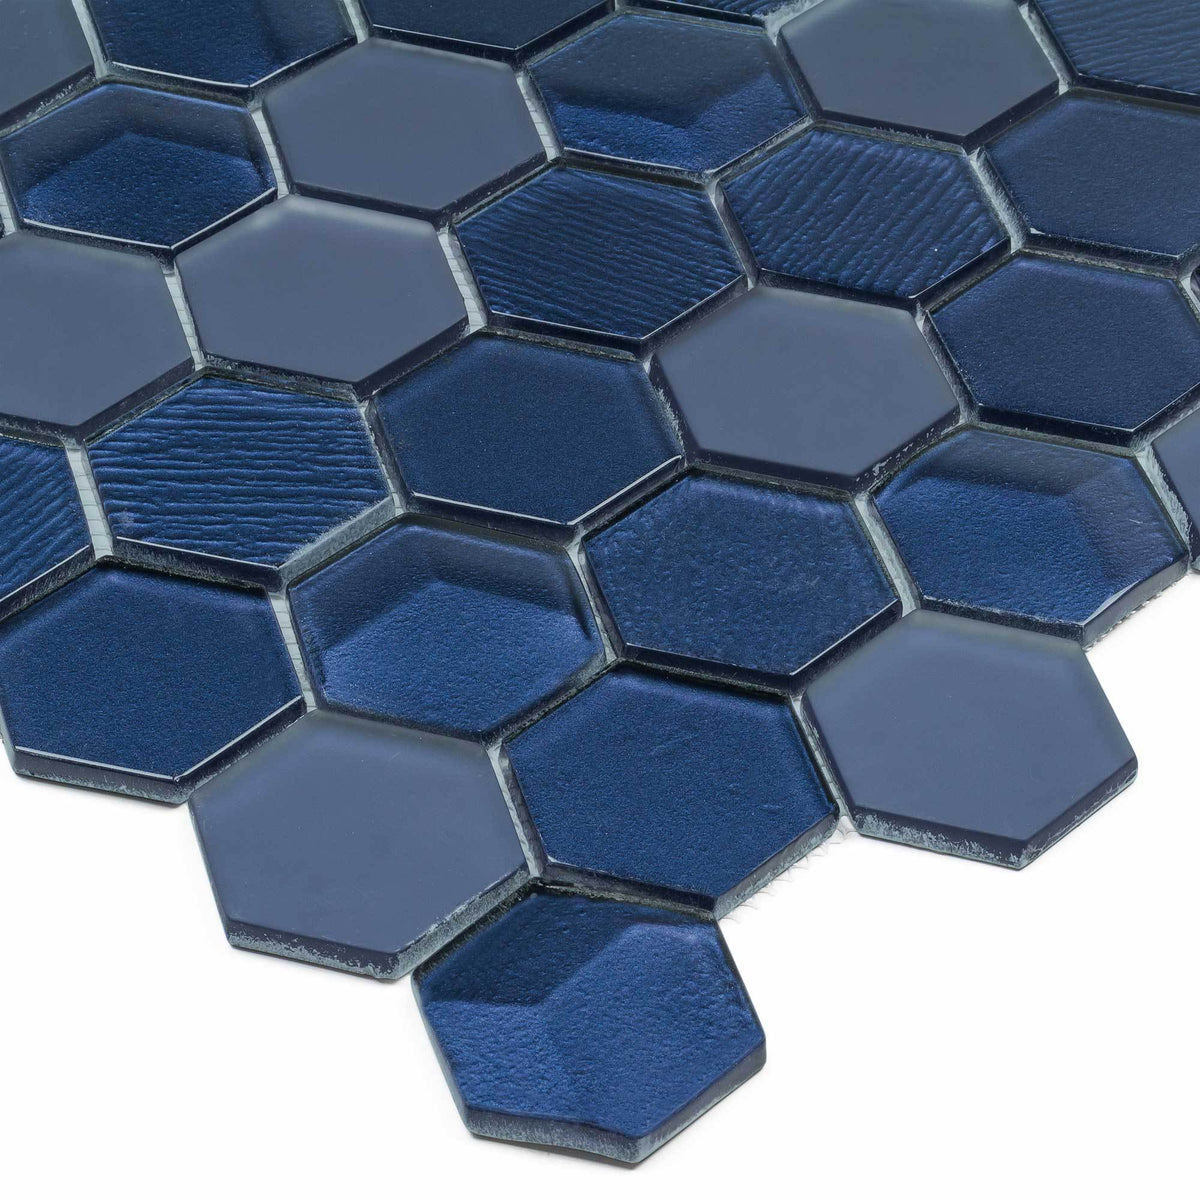 Mto0338 Modern Hexagon Blue Bold Glossy Metallic Glass